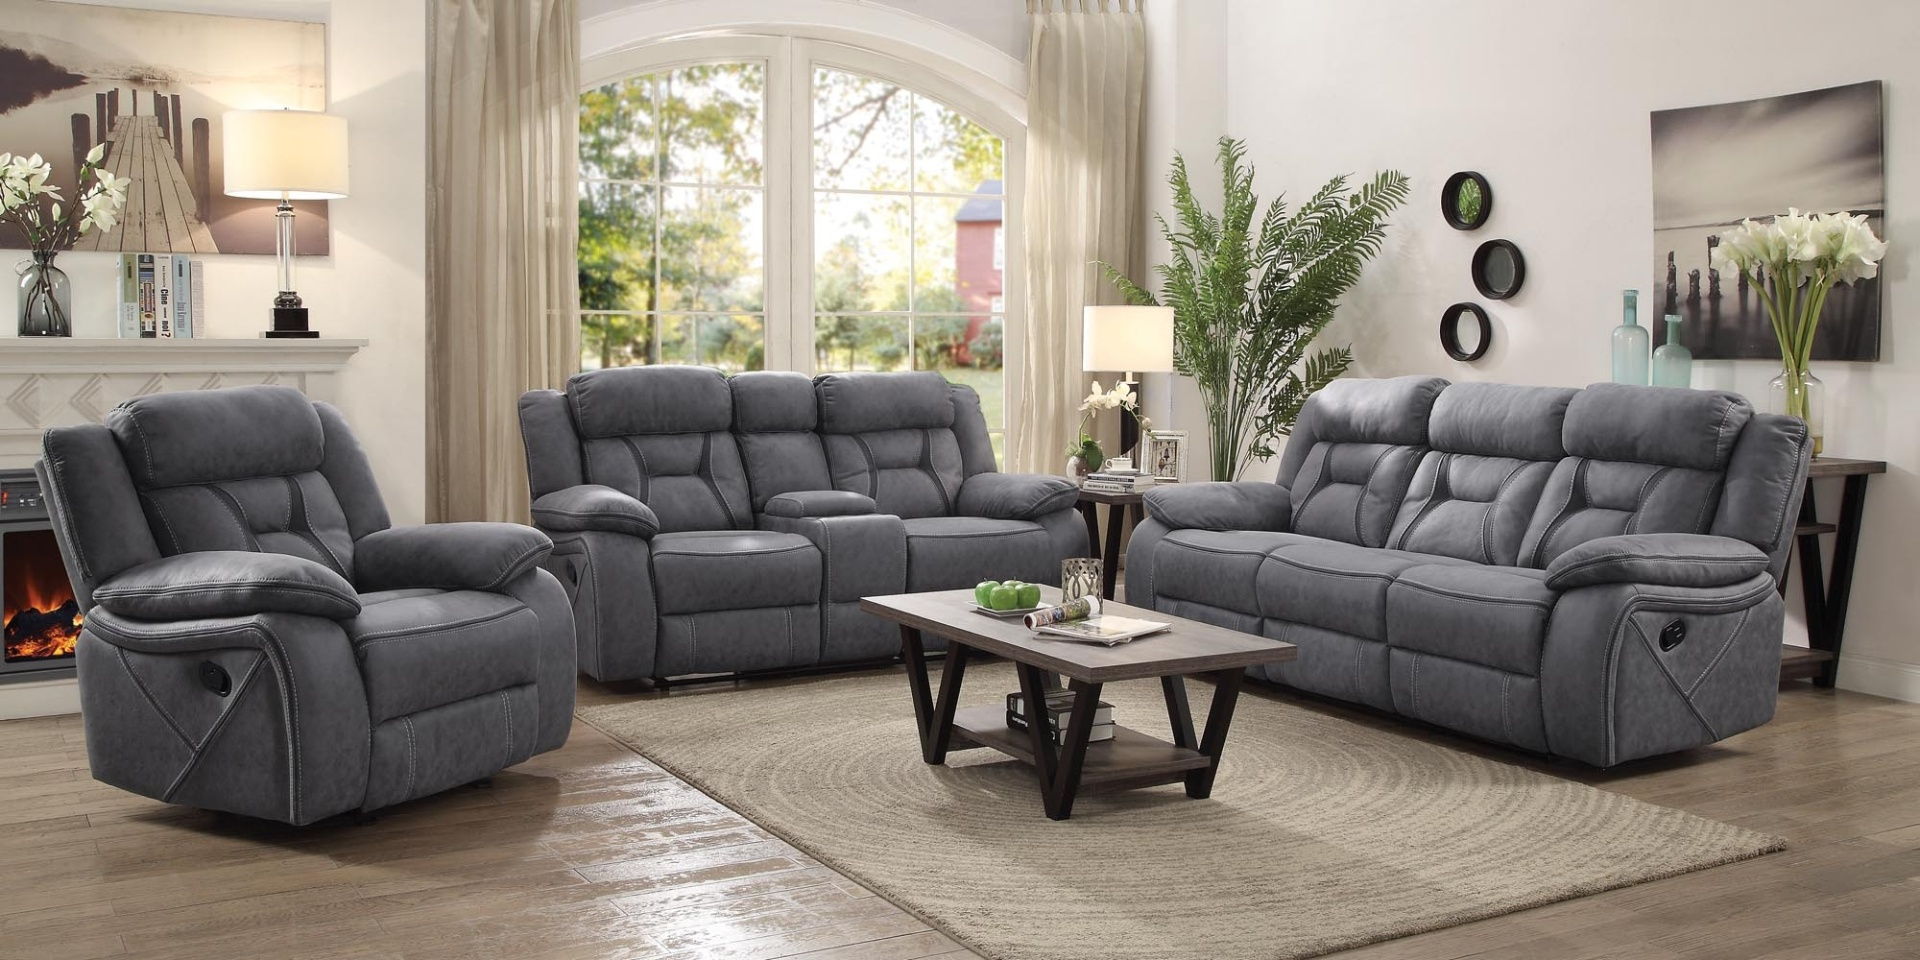 Furniture clearance center motion groups - Cheap living room sets in houston tx ...